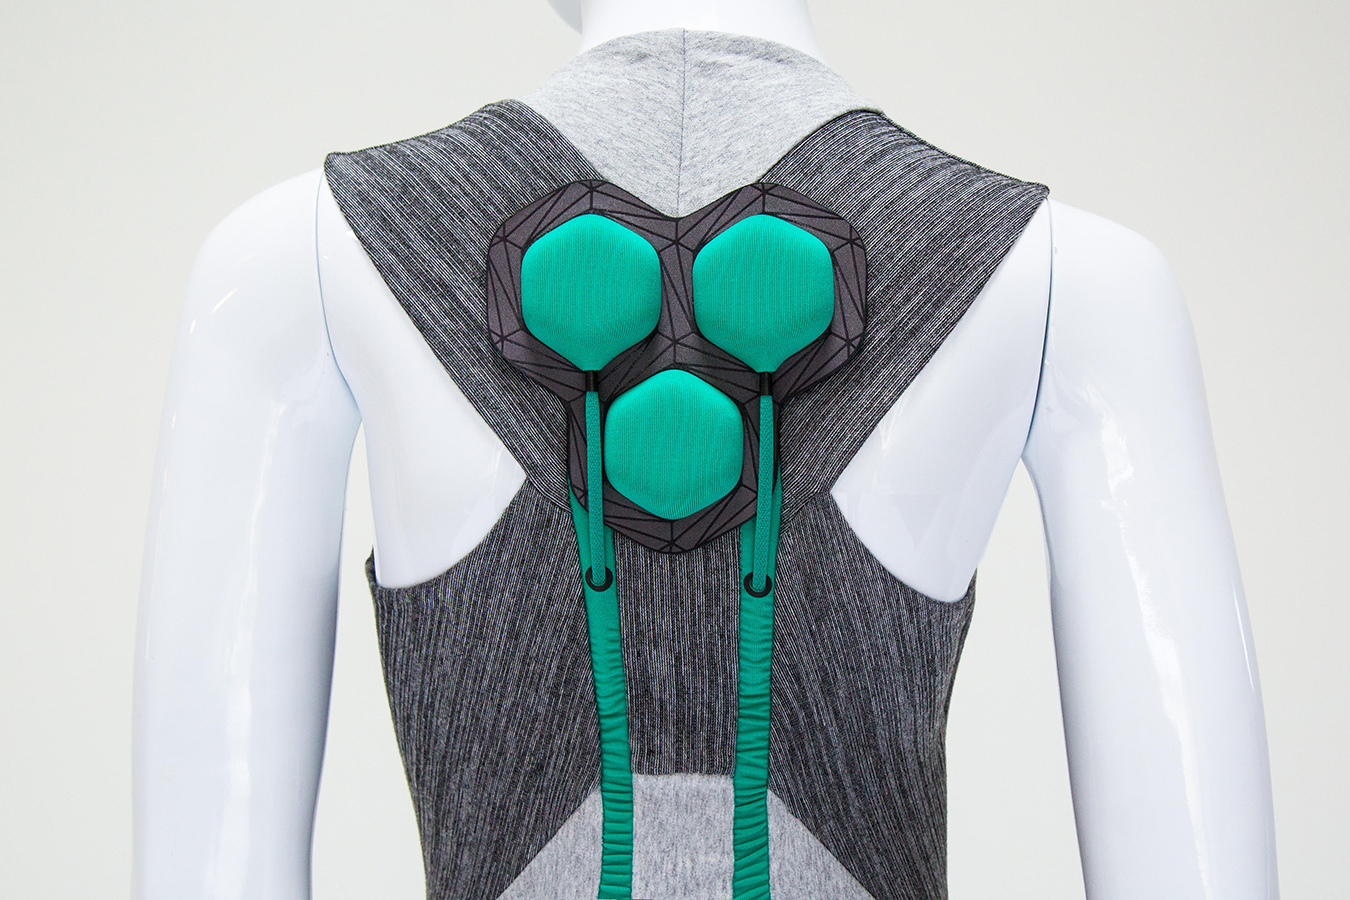 Superflex, Aura-powered bodysuits, Yves Behar. Courtesy of Superflex.